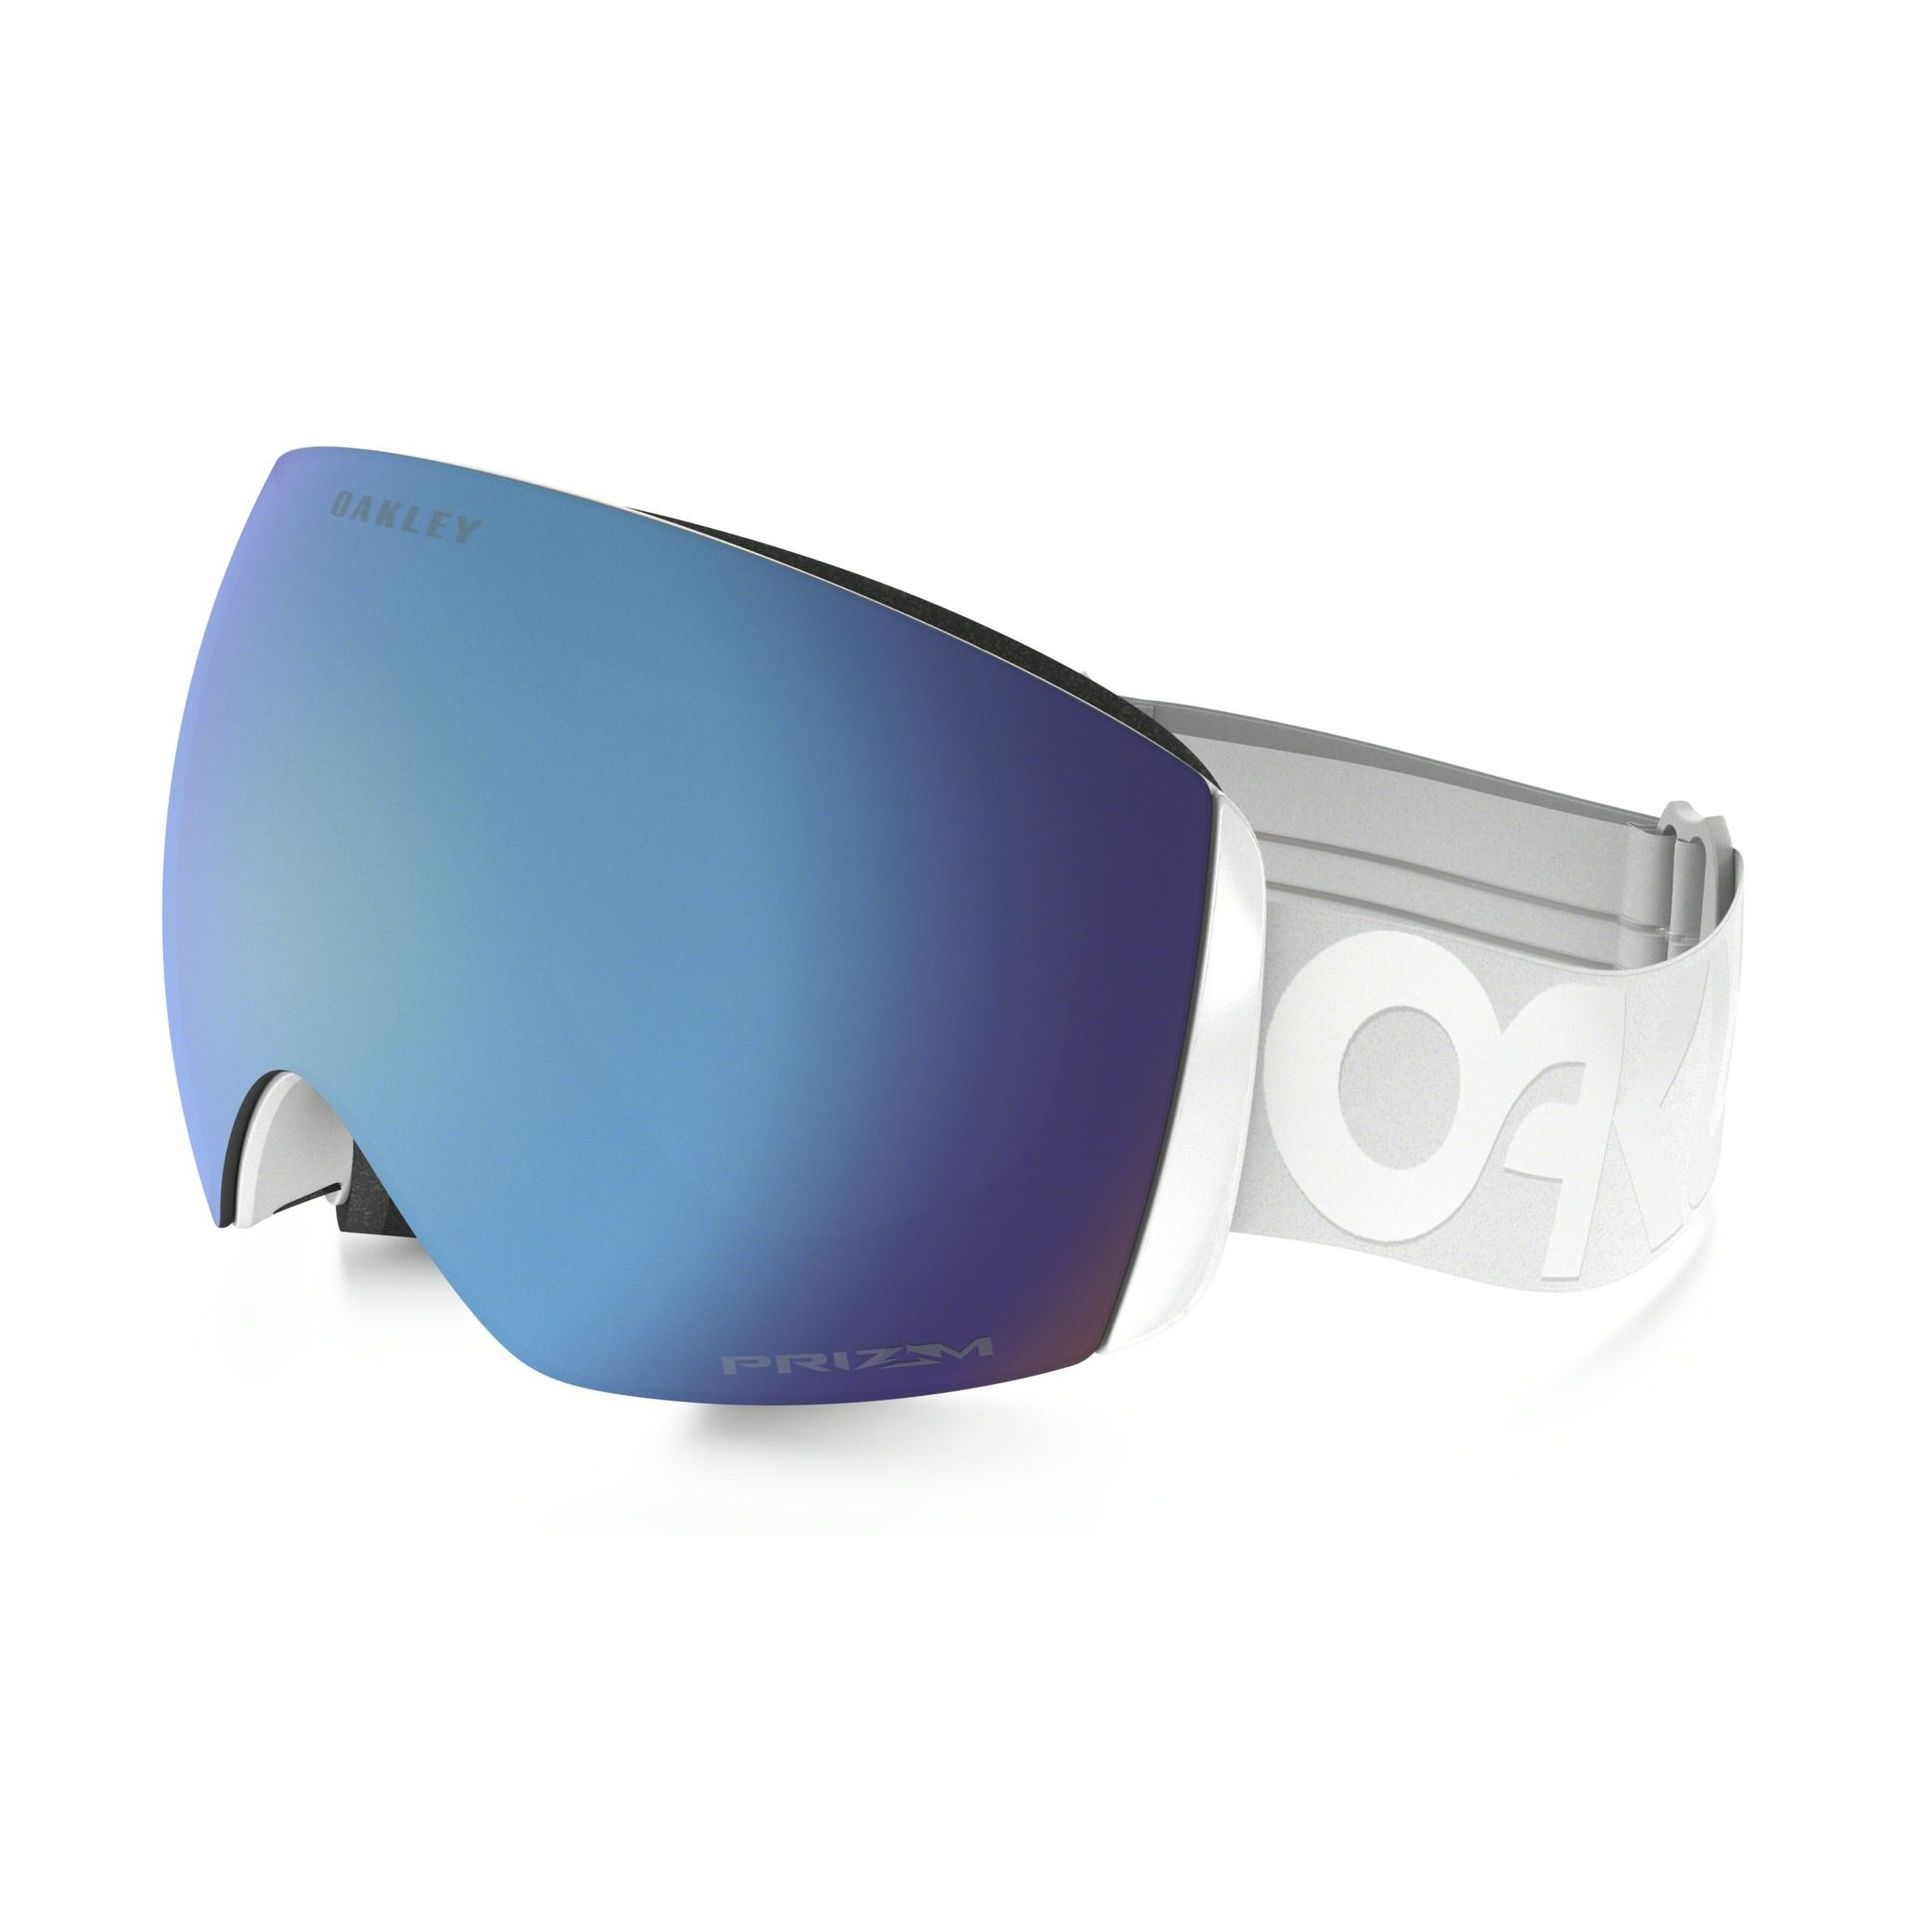 GOGLE OAKLEY FLIGHT DECK FACTORY PILOT WHITEOUT PRIZM SAPPHIRE IRIDIUM